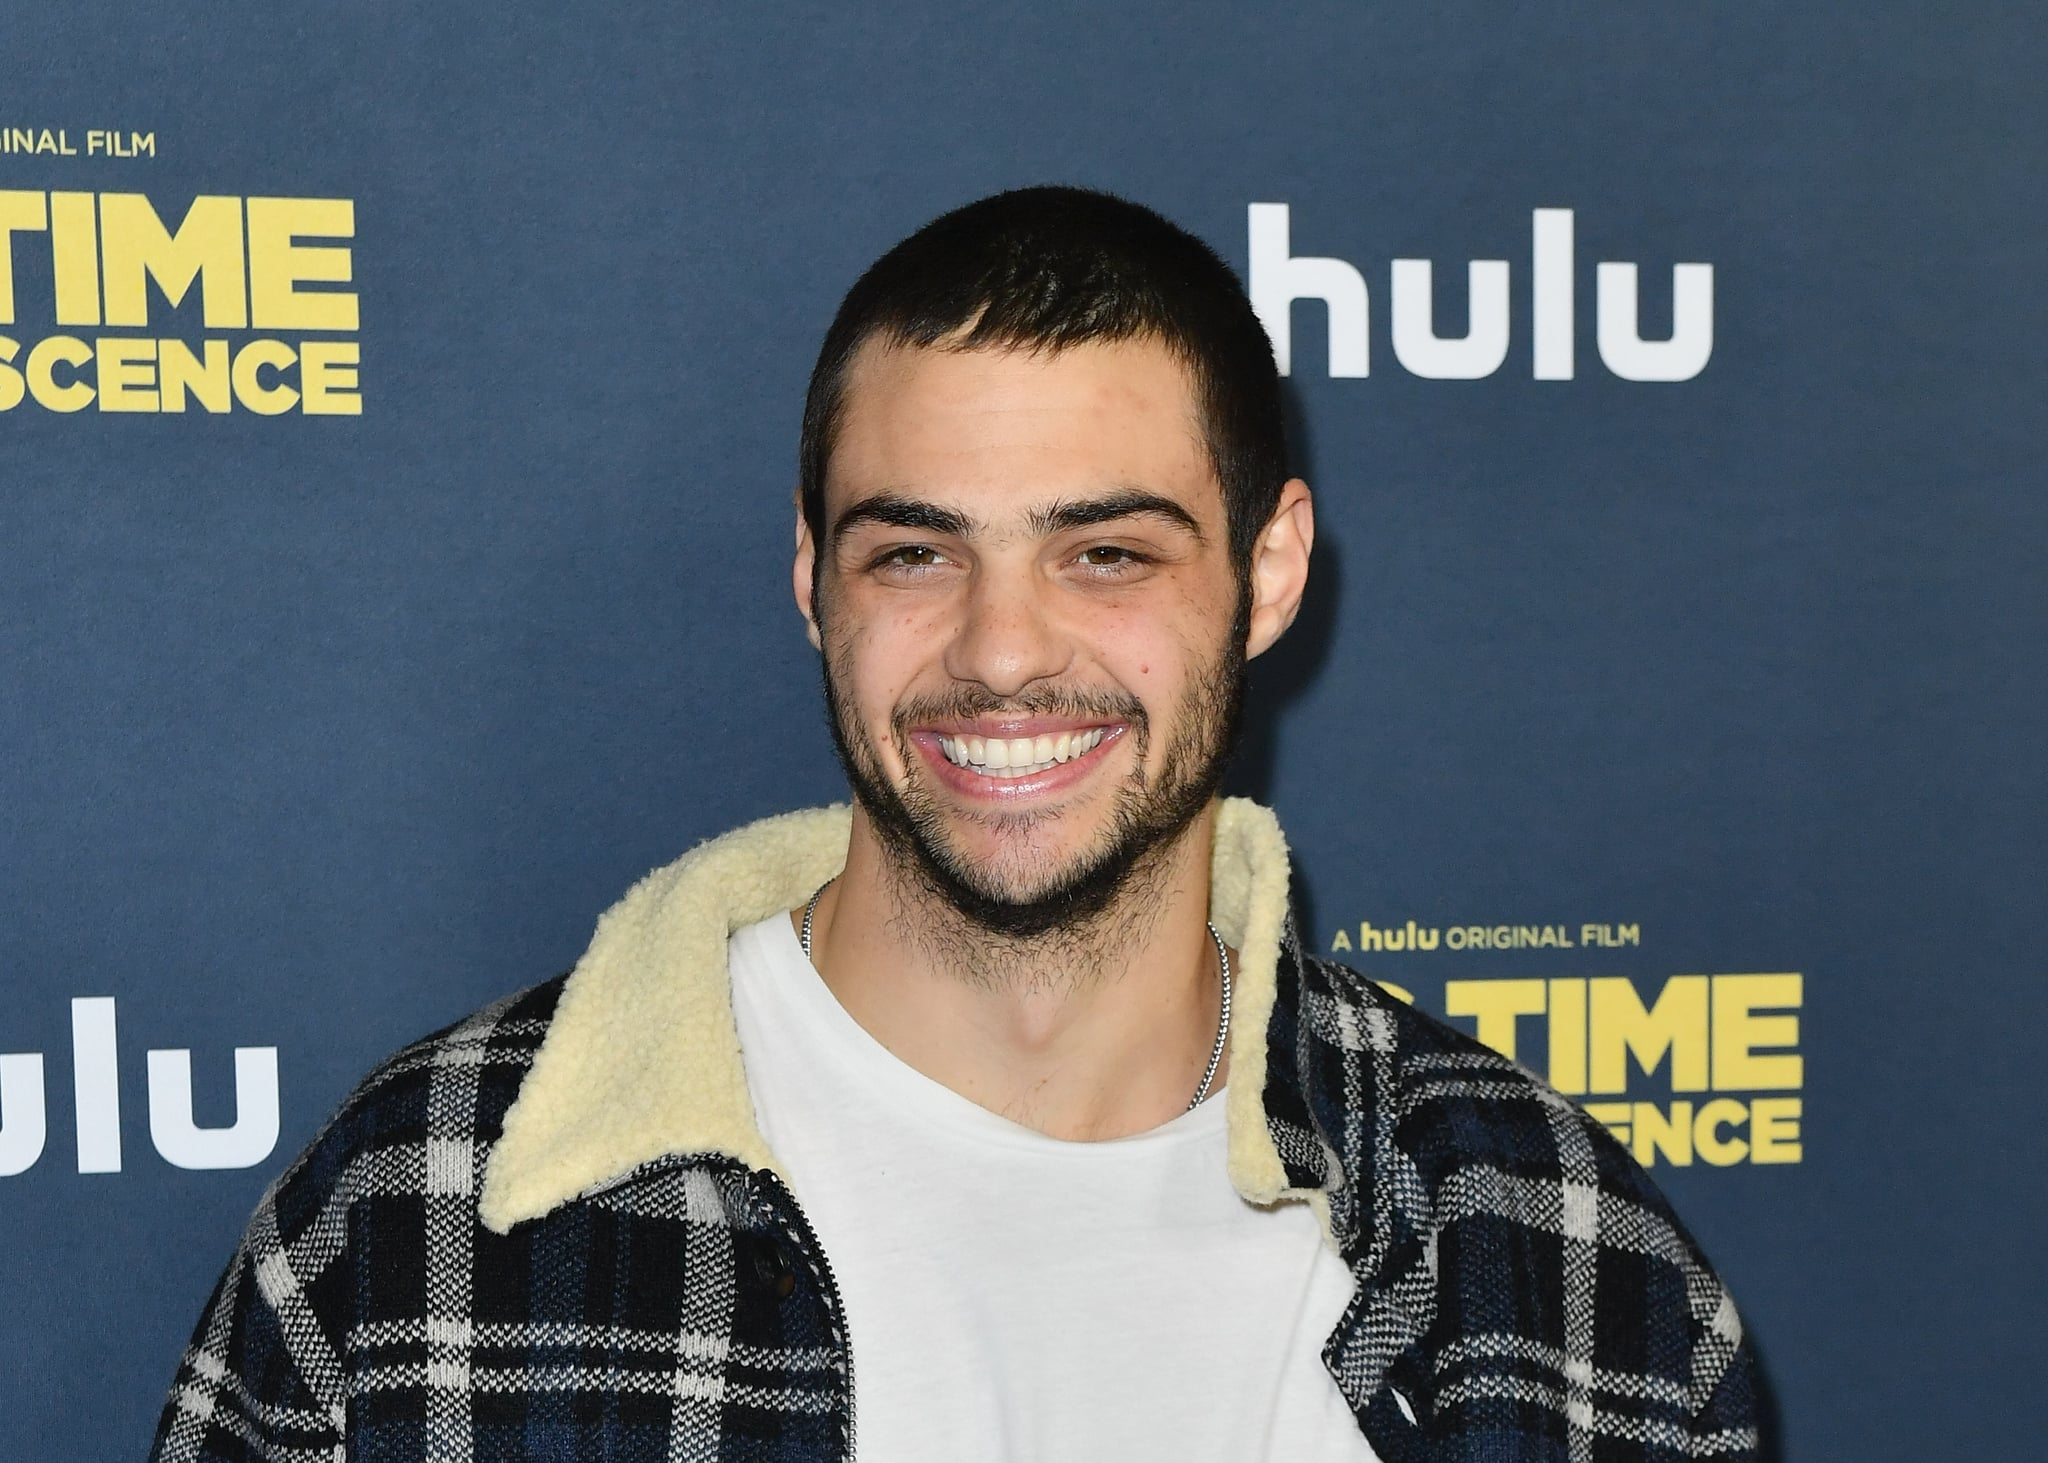 US actor Noah Centineo attends the premiere of Hulu's